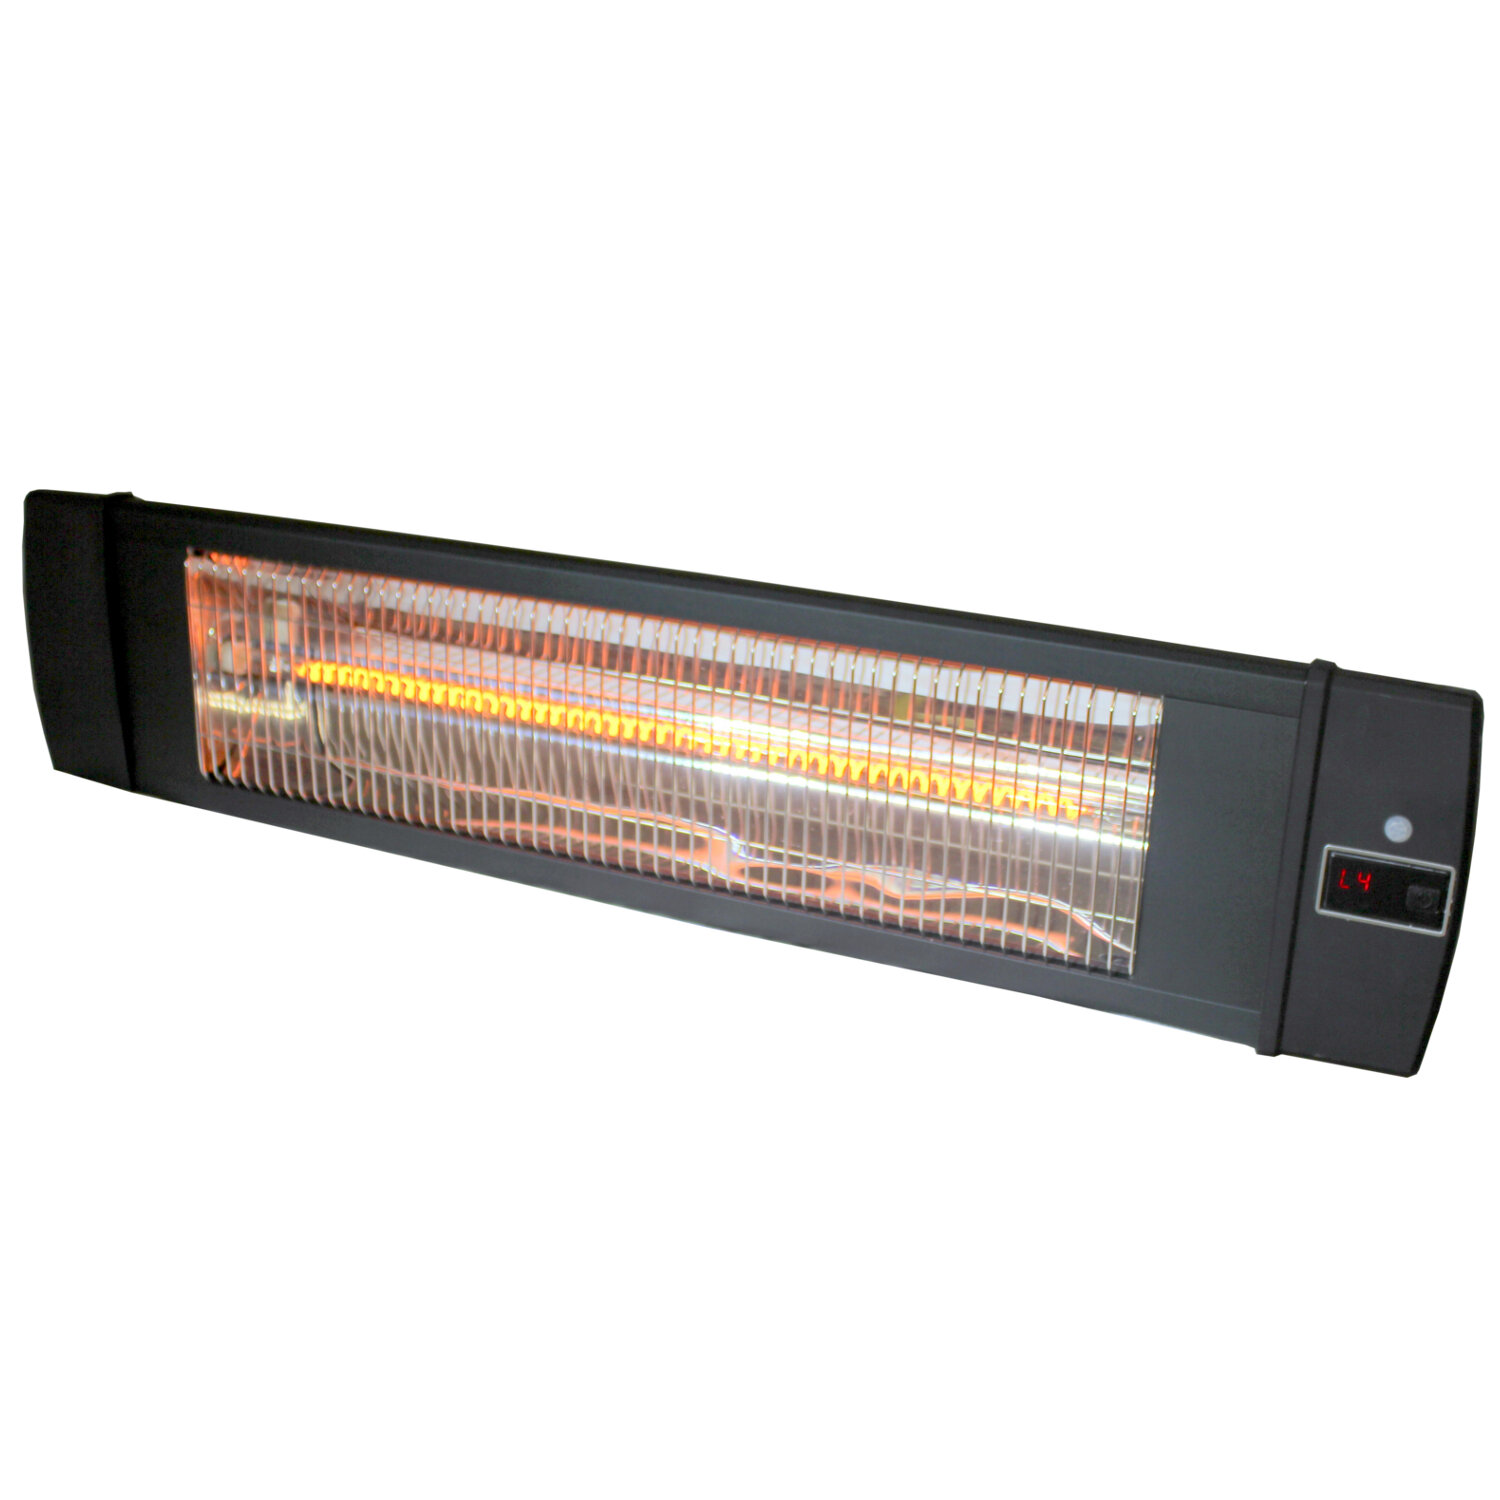 Versonel 1500 Watts Wall Mount Carbon Infrared Indoor Outdoor Heater With  Remote | Wayfair